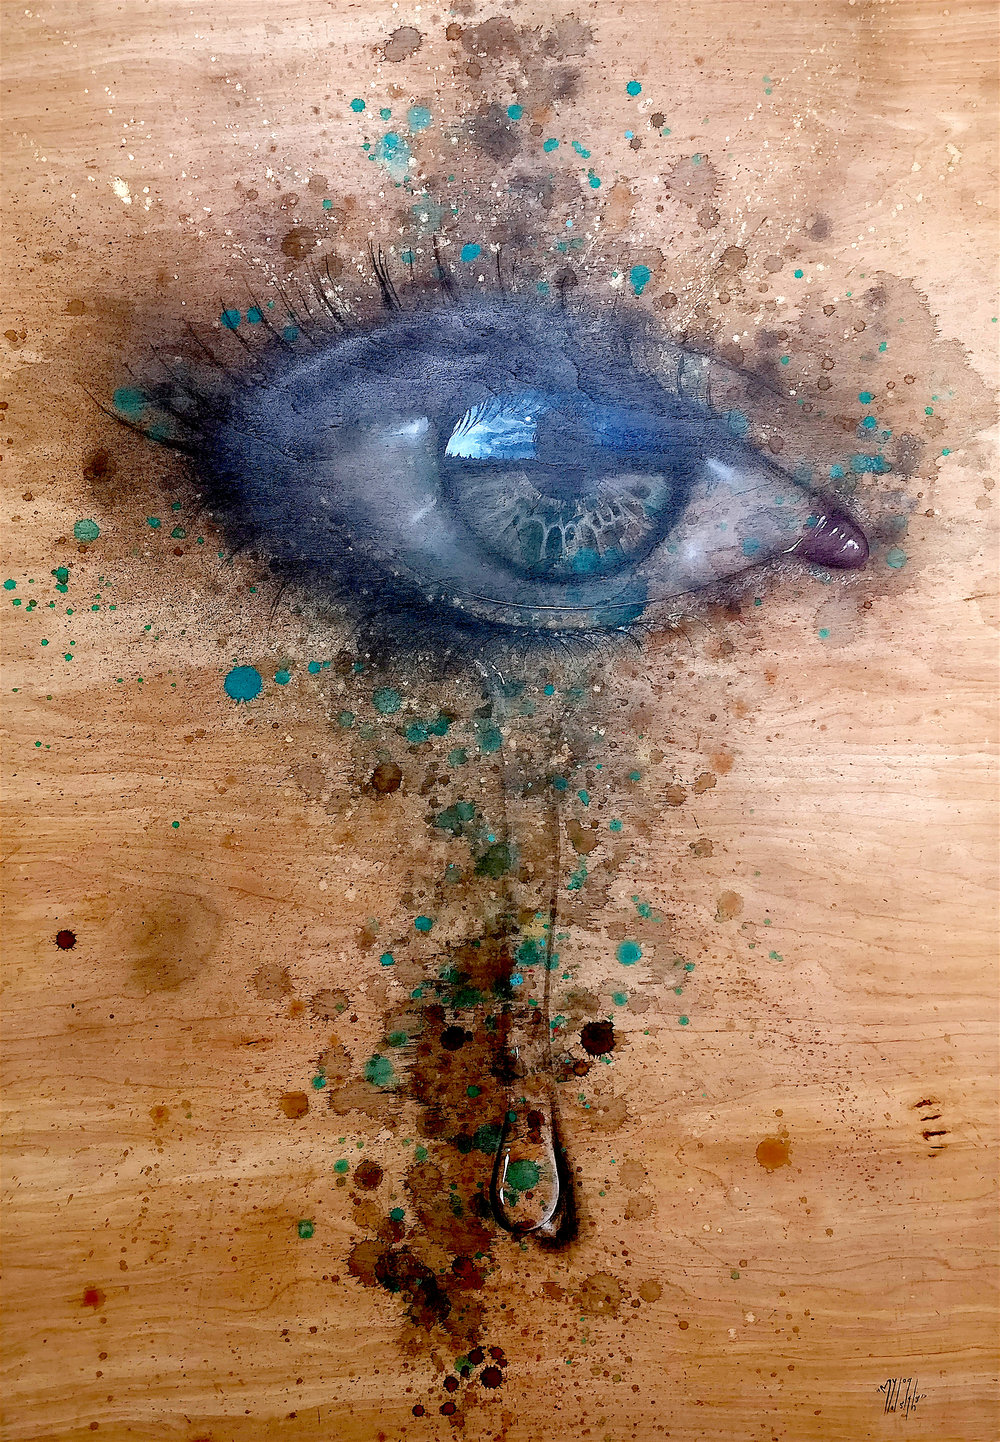 My Dog Sighs | What next